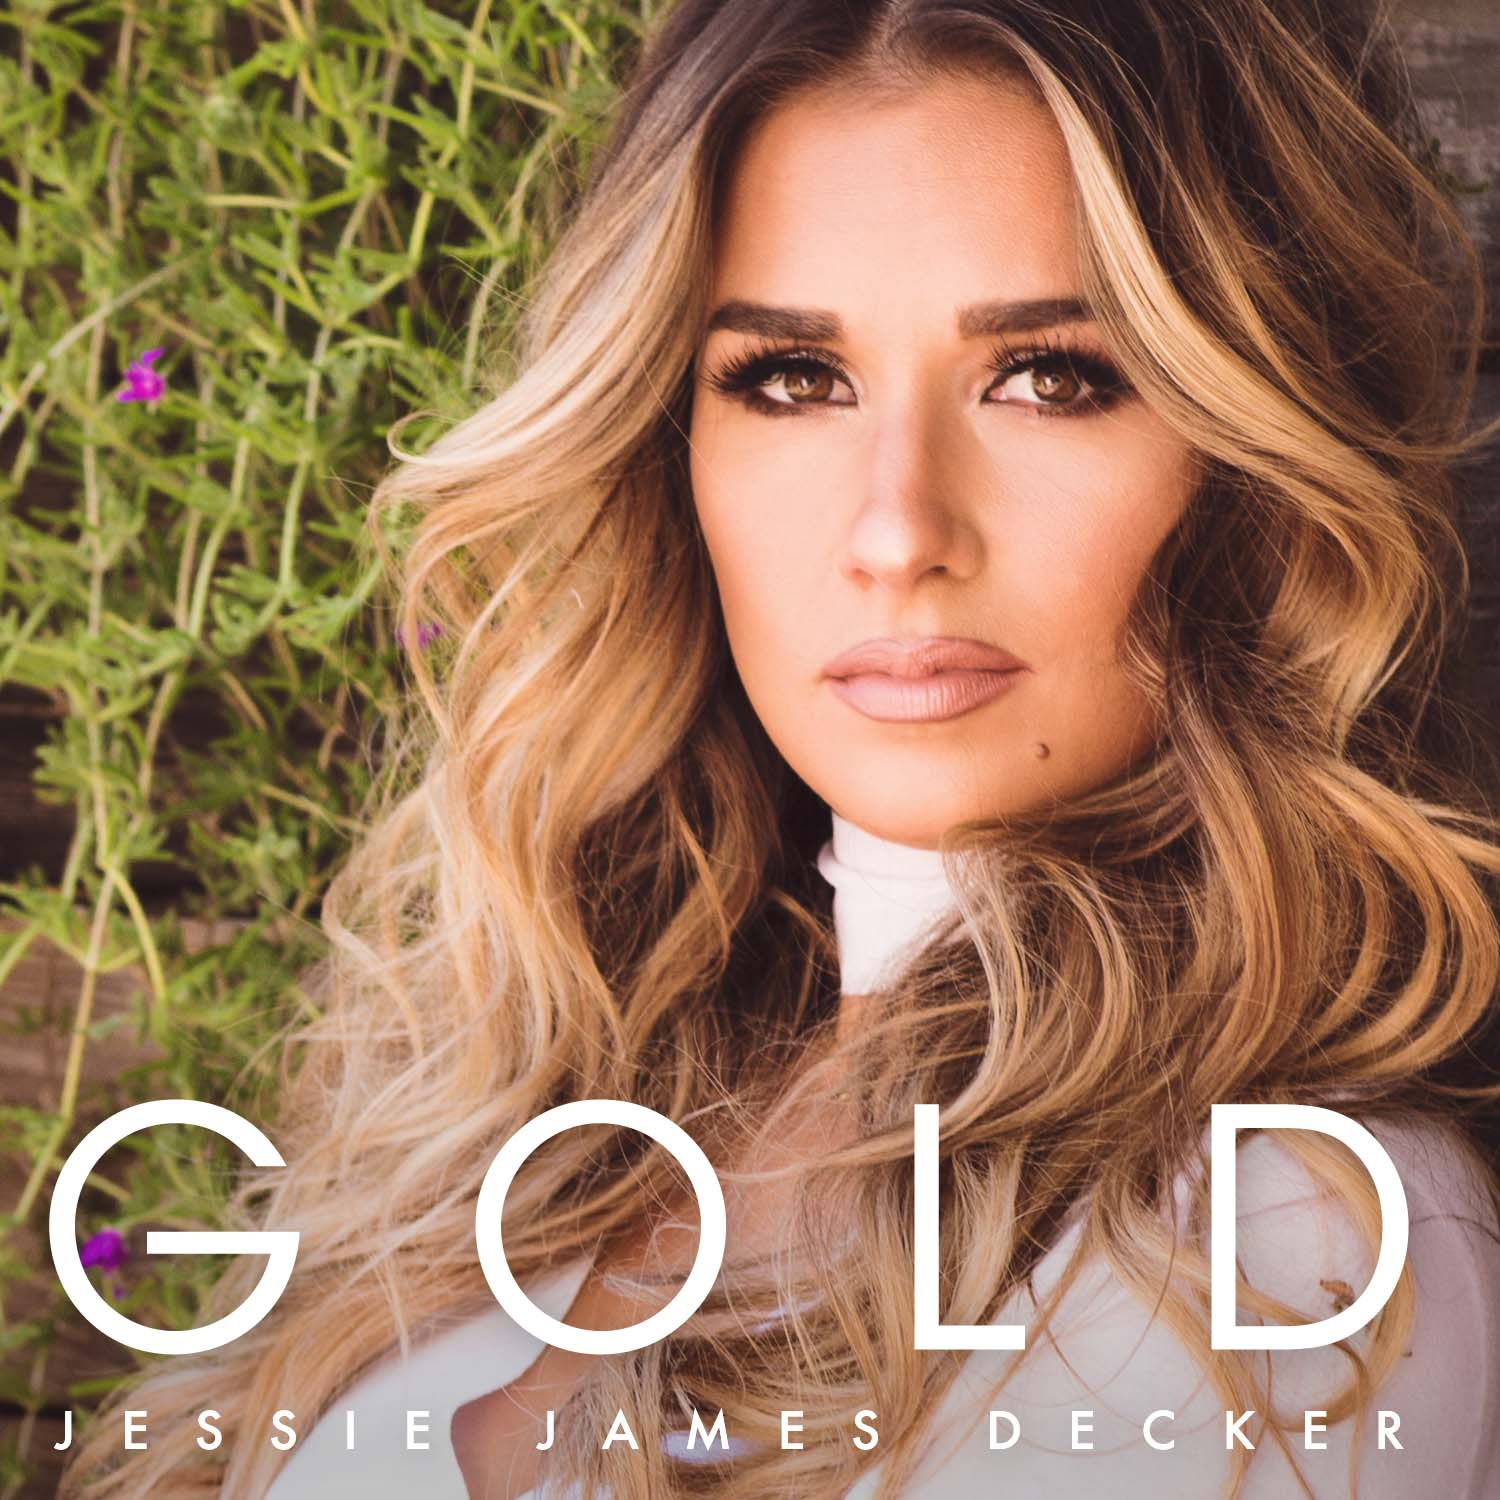 JESSIE JAMES DECKER SHINES ON NEW EP GOLD - AVAILABLE NOW - Epic Records